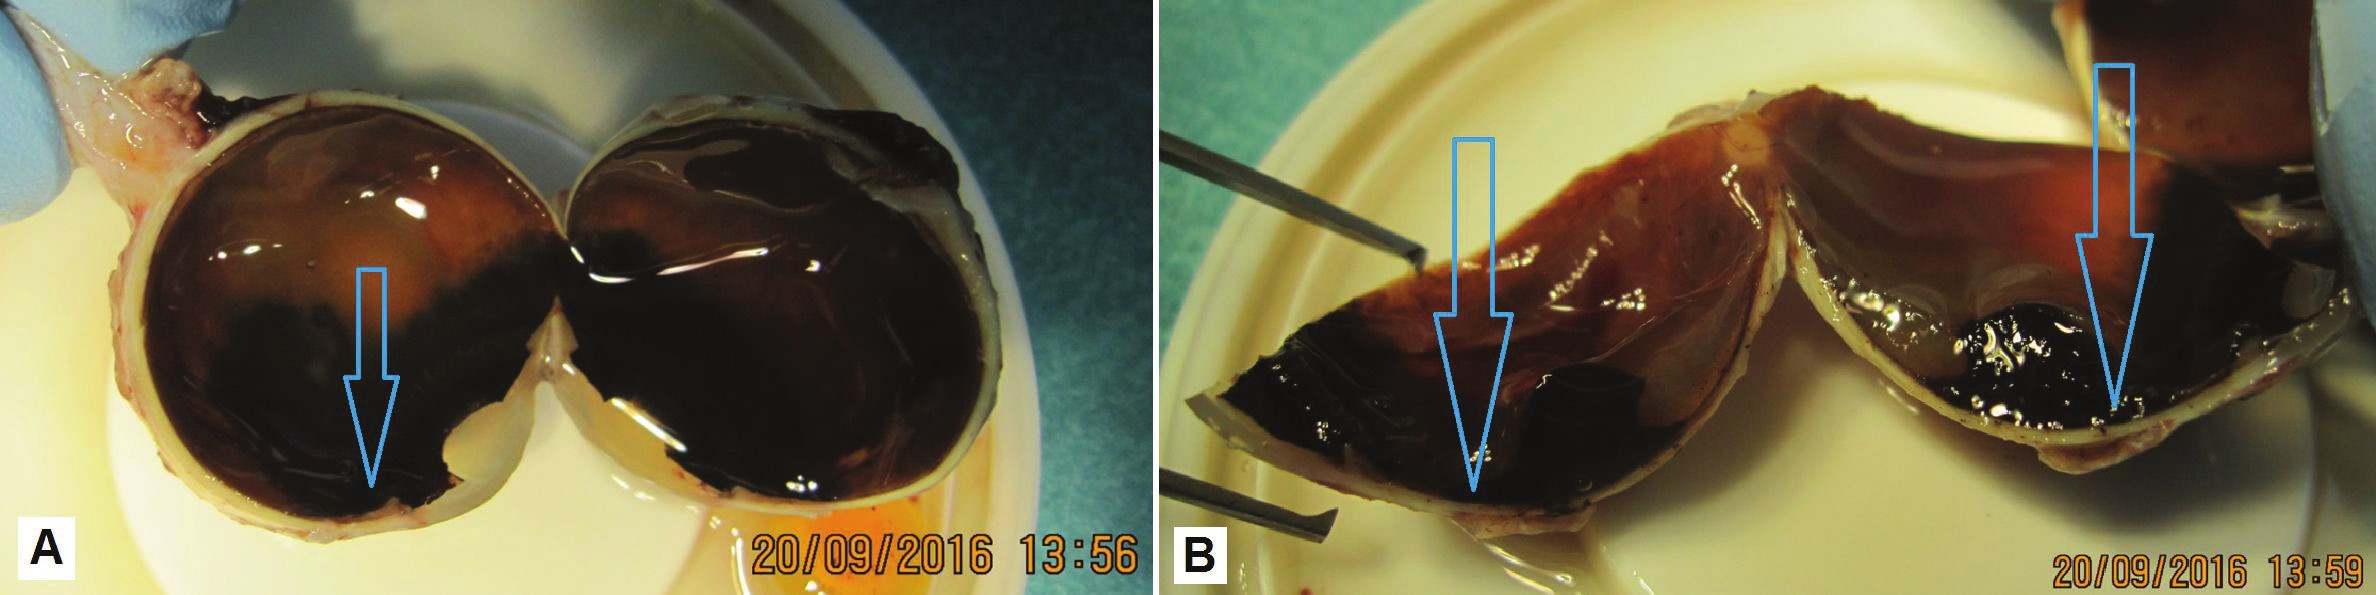 Macro photo of enucleated eyeball (A), detail of pronounced pigmented malignant melanoma in cross-section (B)